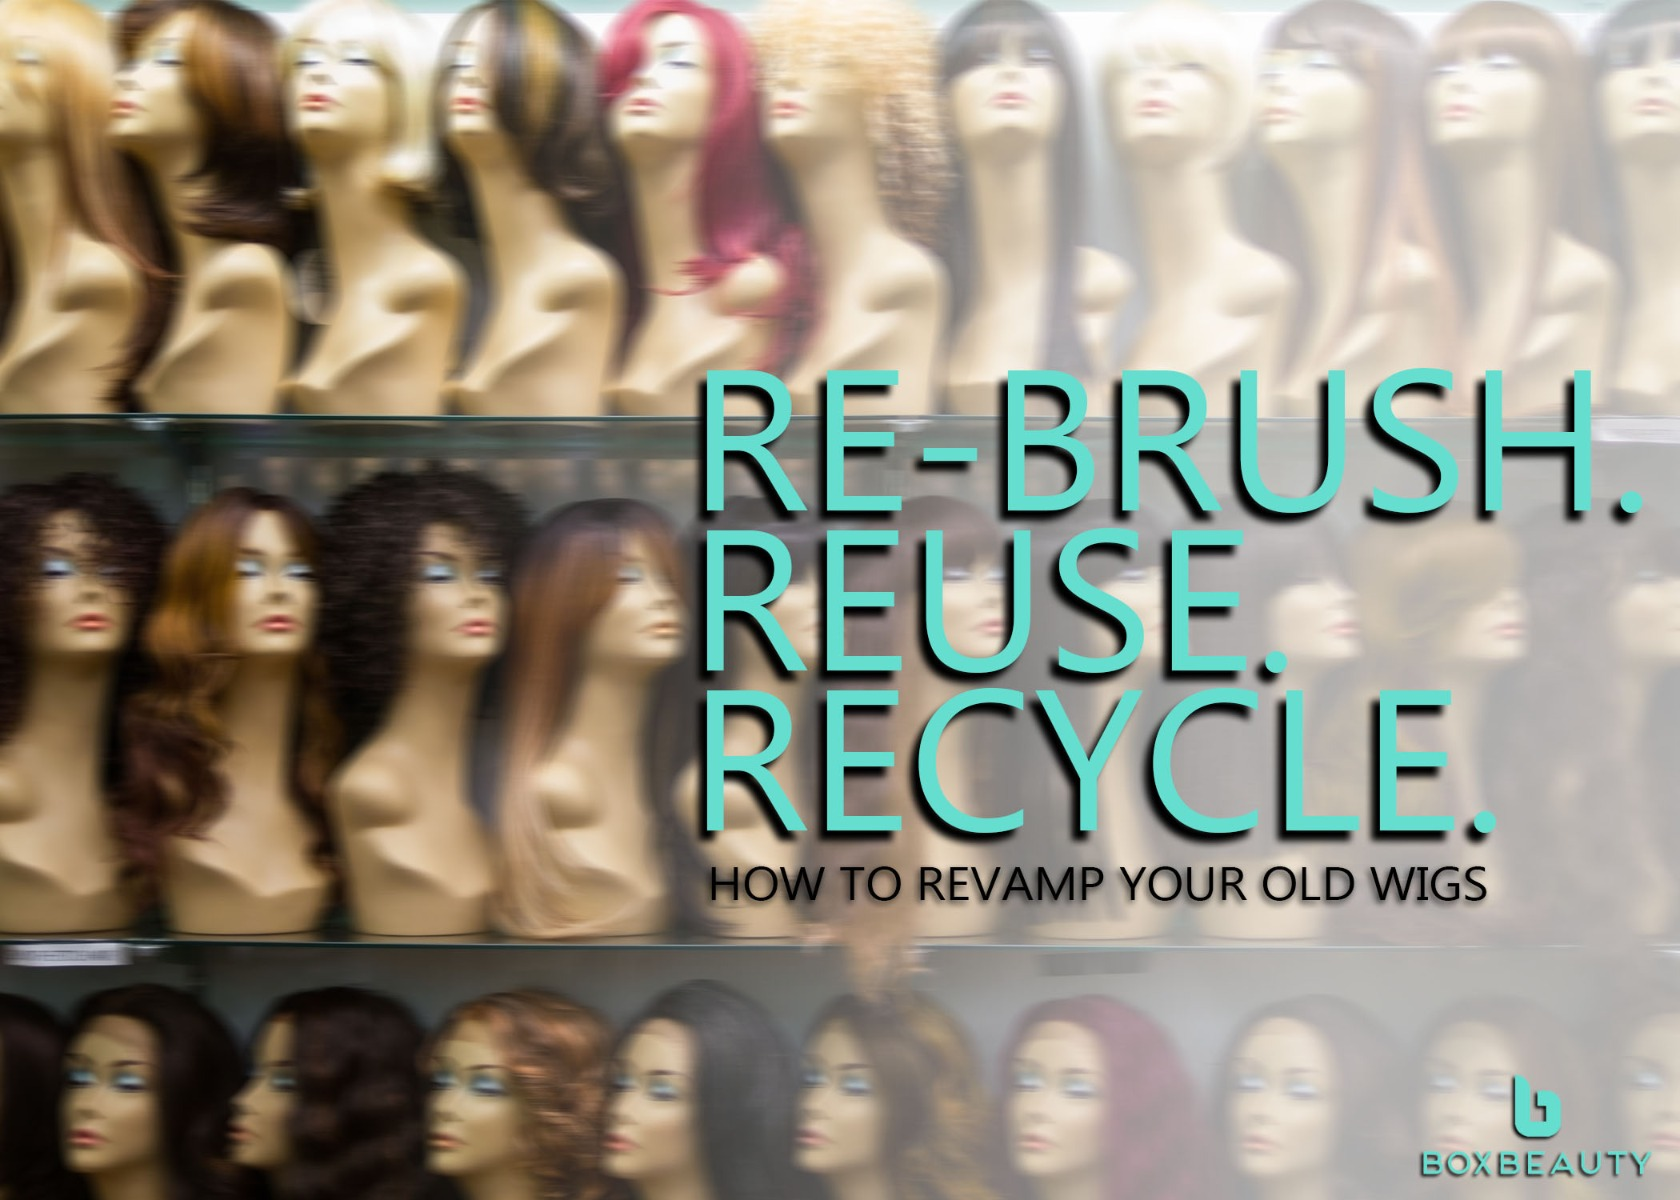 Re-brush. Reuse. Recycle.